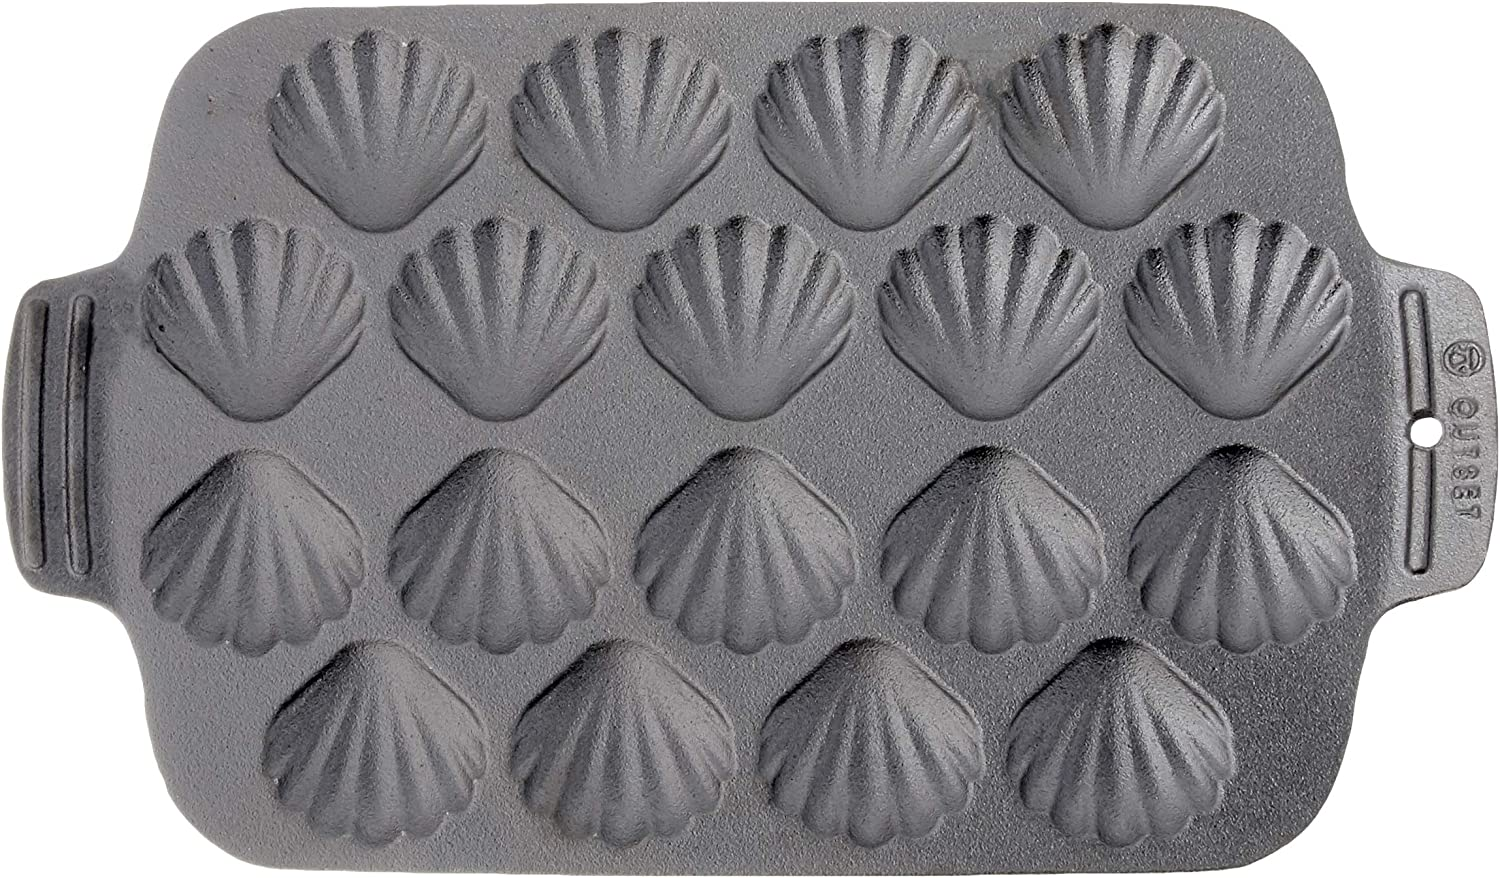 Outset 76377 Scallop Cast Iron Grill and Serving Pan